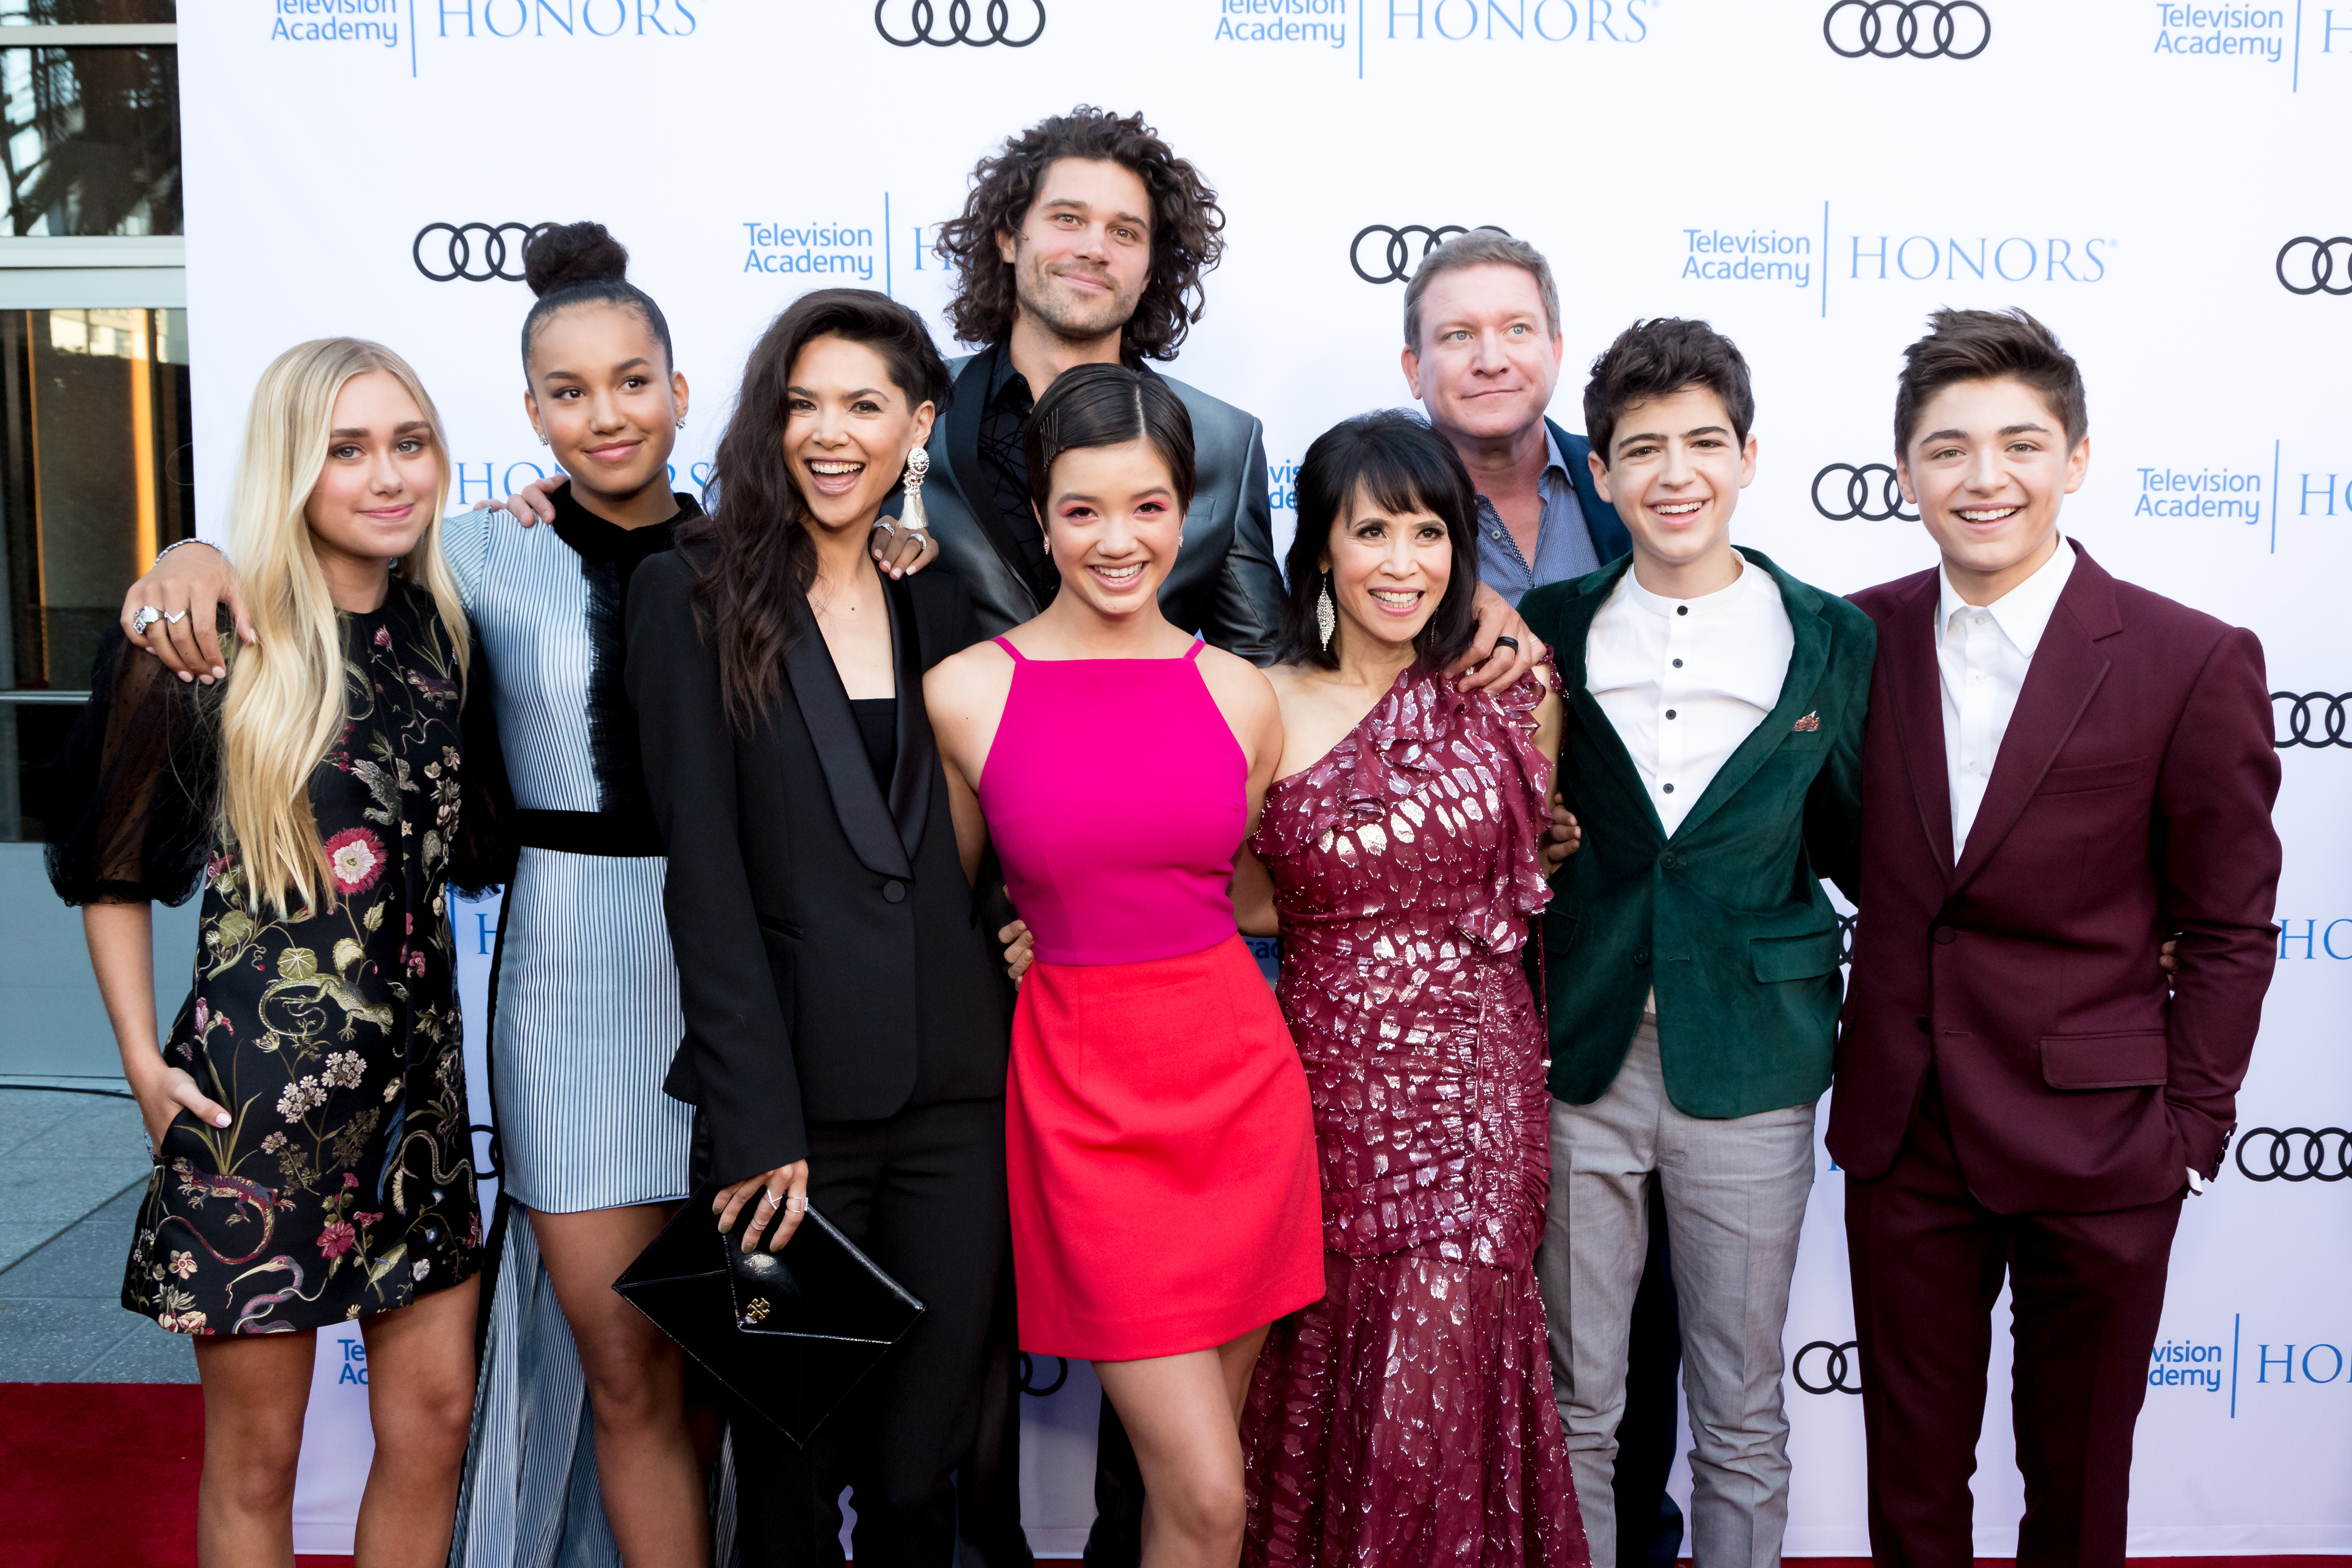 (L-R) Emily Skinner, Sofia Wylie, Lilan Bowden, Guest, Peyton Lee, Lauren Tom, Guest, Joshua Rush and Asher Angel attend the 11th Annual Television Academy Honors at NeueHouse Hollywood on May 31, 2018 in Los Angeles, California.